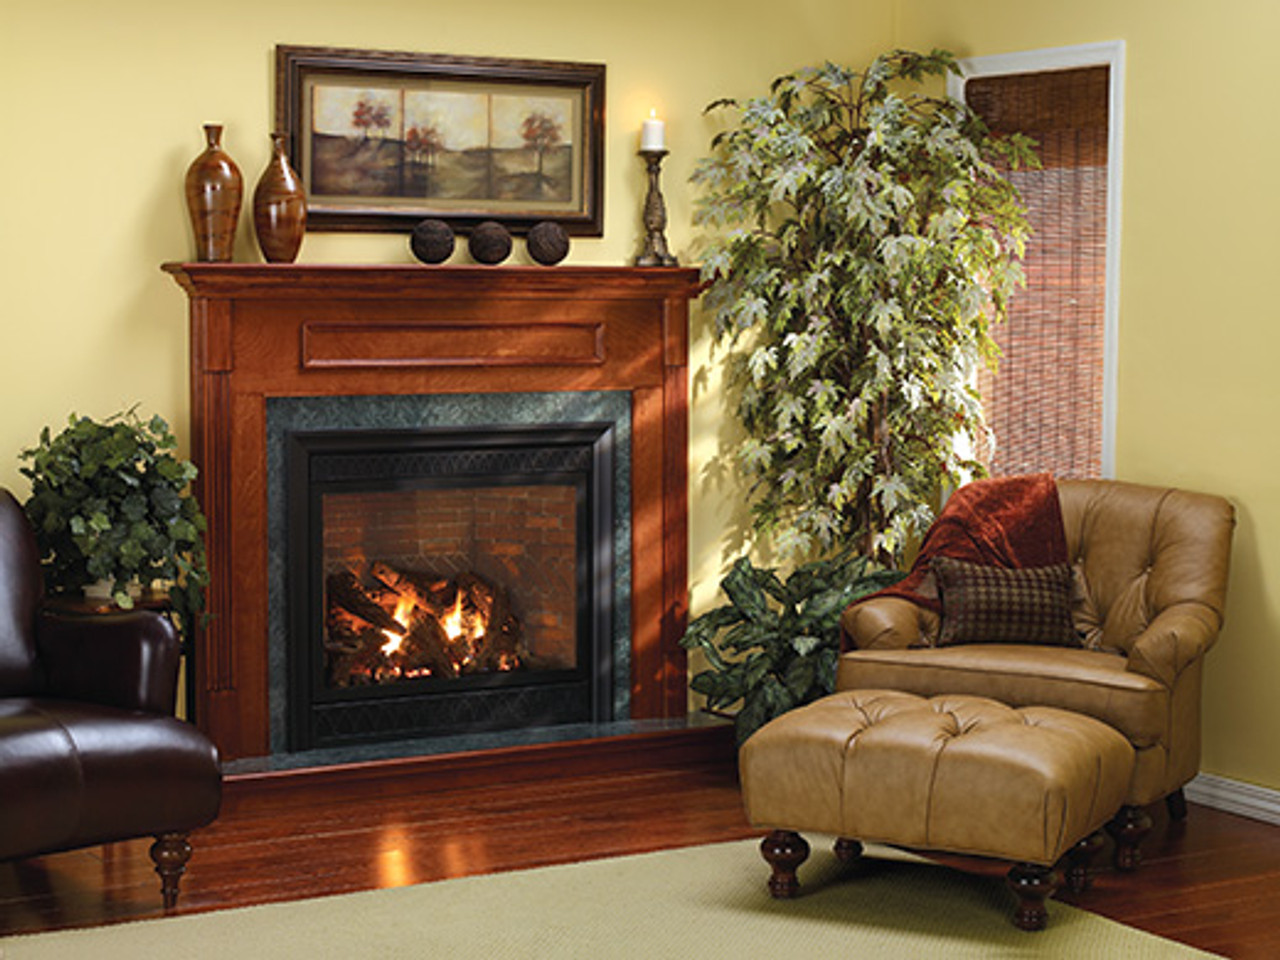 """Empire Tahoe Direct-Vent Fireplace Luxury 36"""" - Multi-Function Control (includes Variable Remote to control flame Accent Light, and Blower)"""